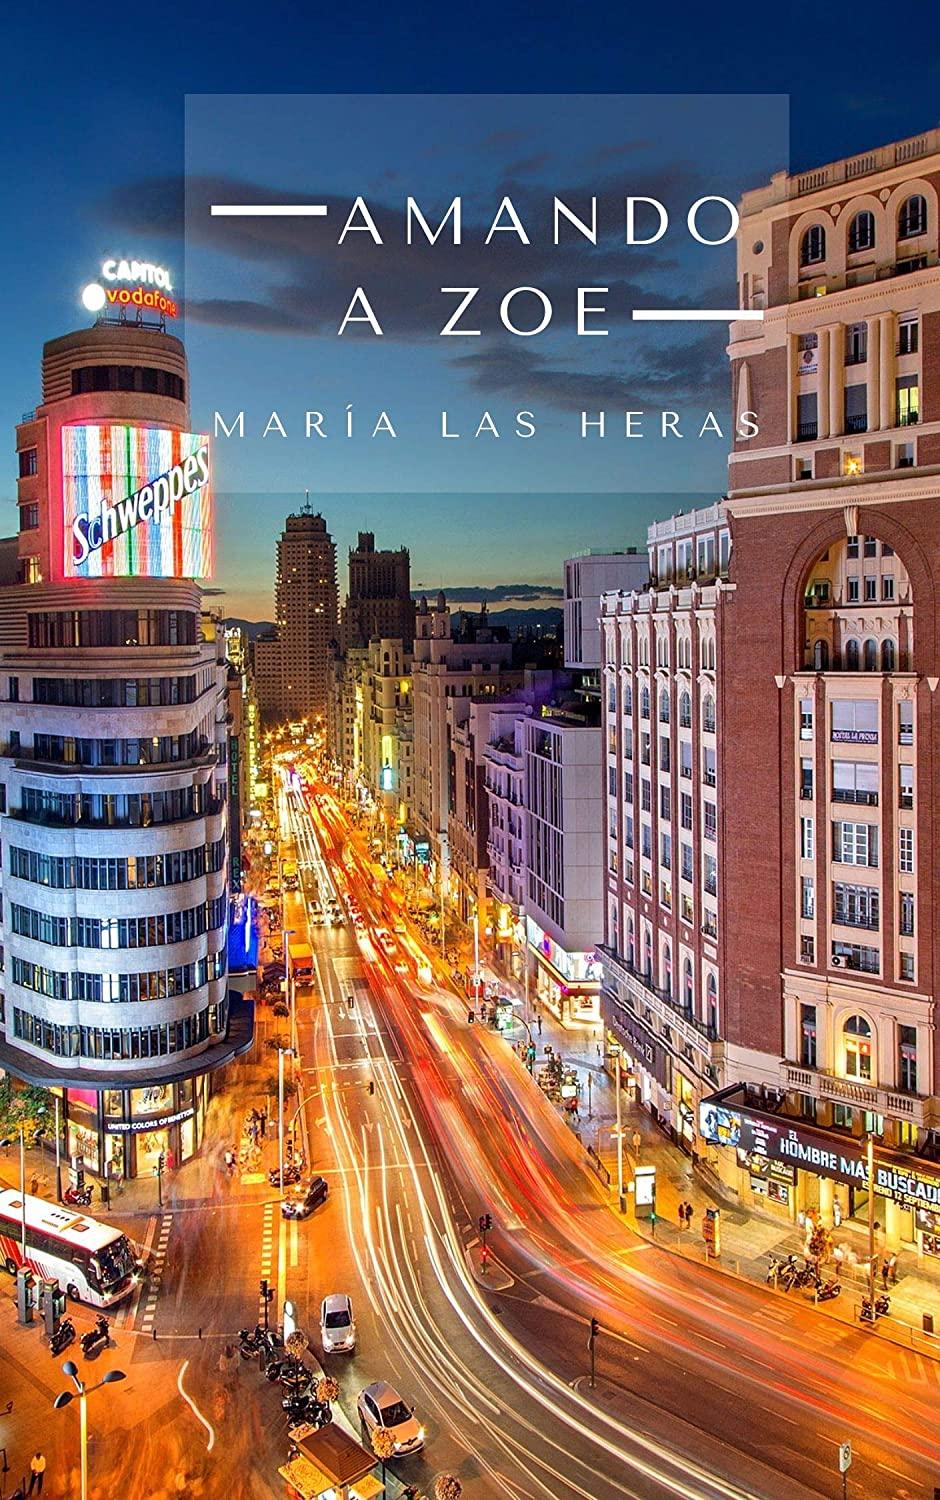 AMANDO A ZOE eBook: LAS HERAS SERRANO, MARIA: Amazon.es: Tienda Kindle